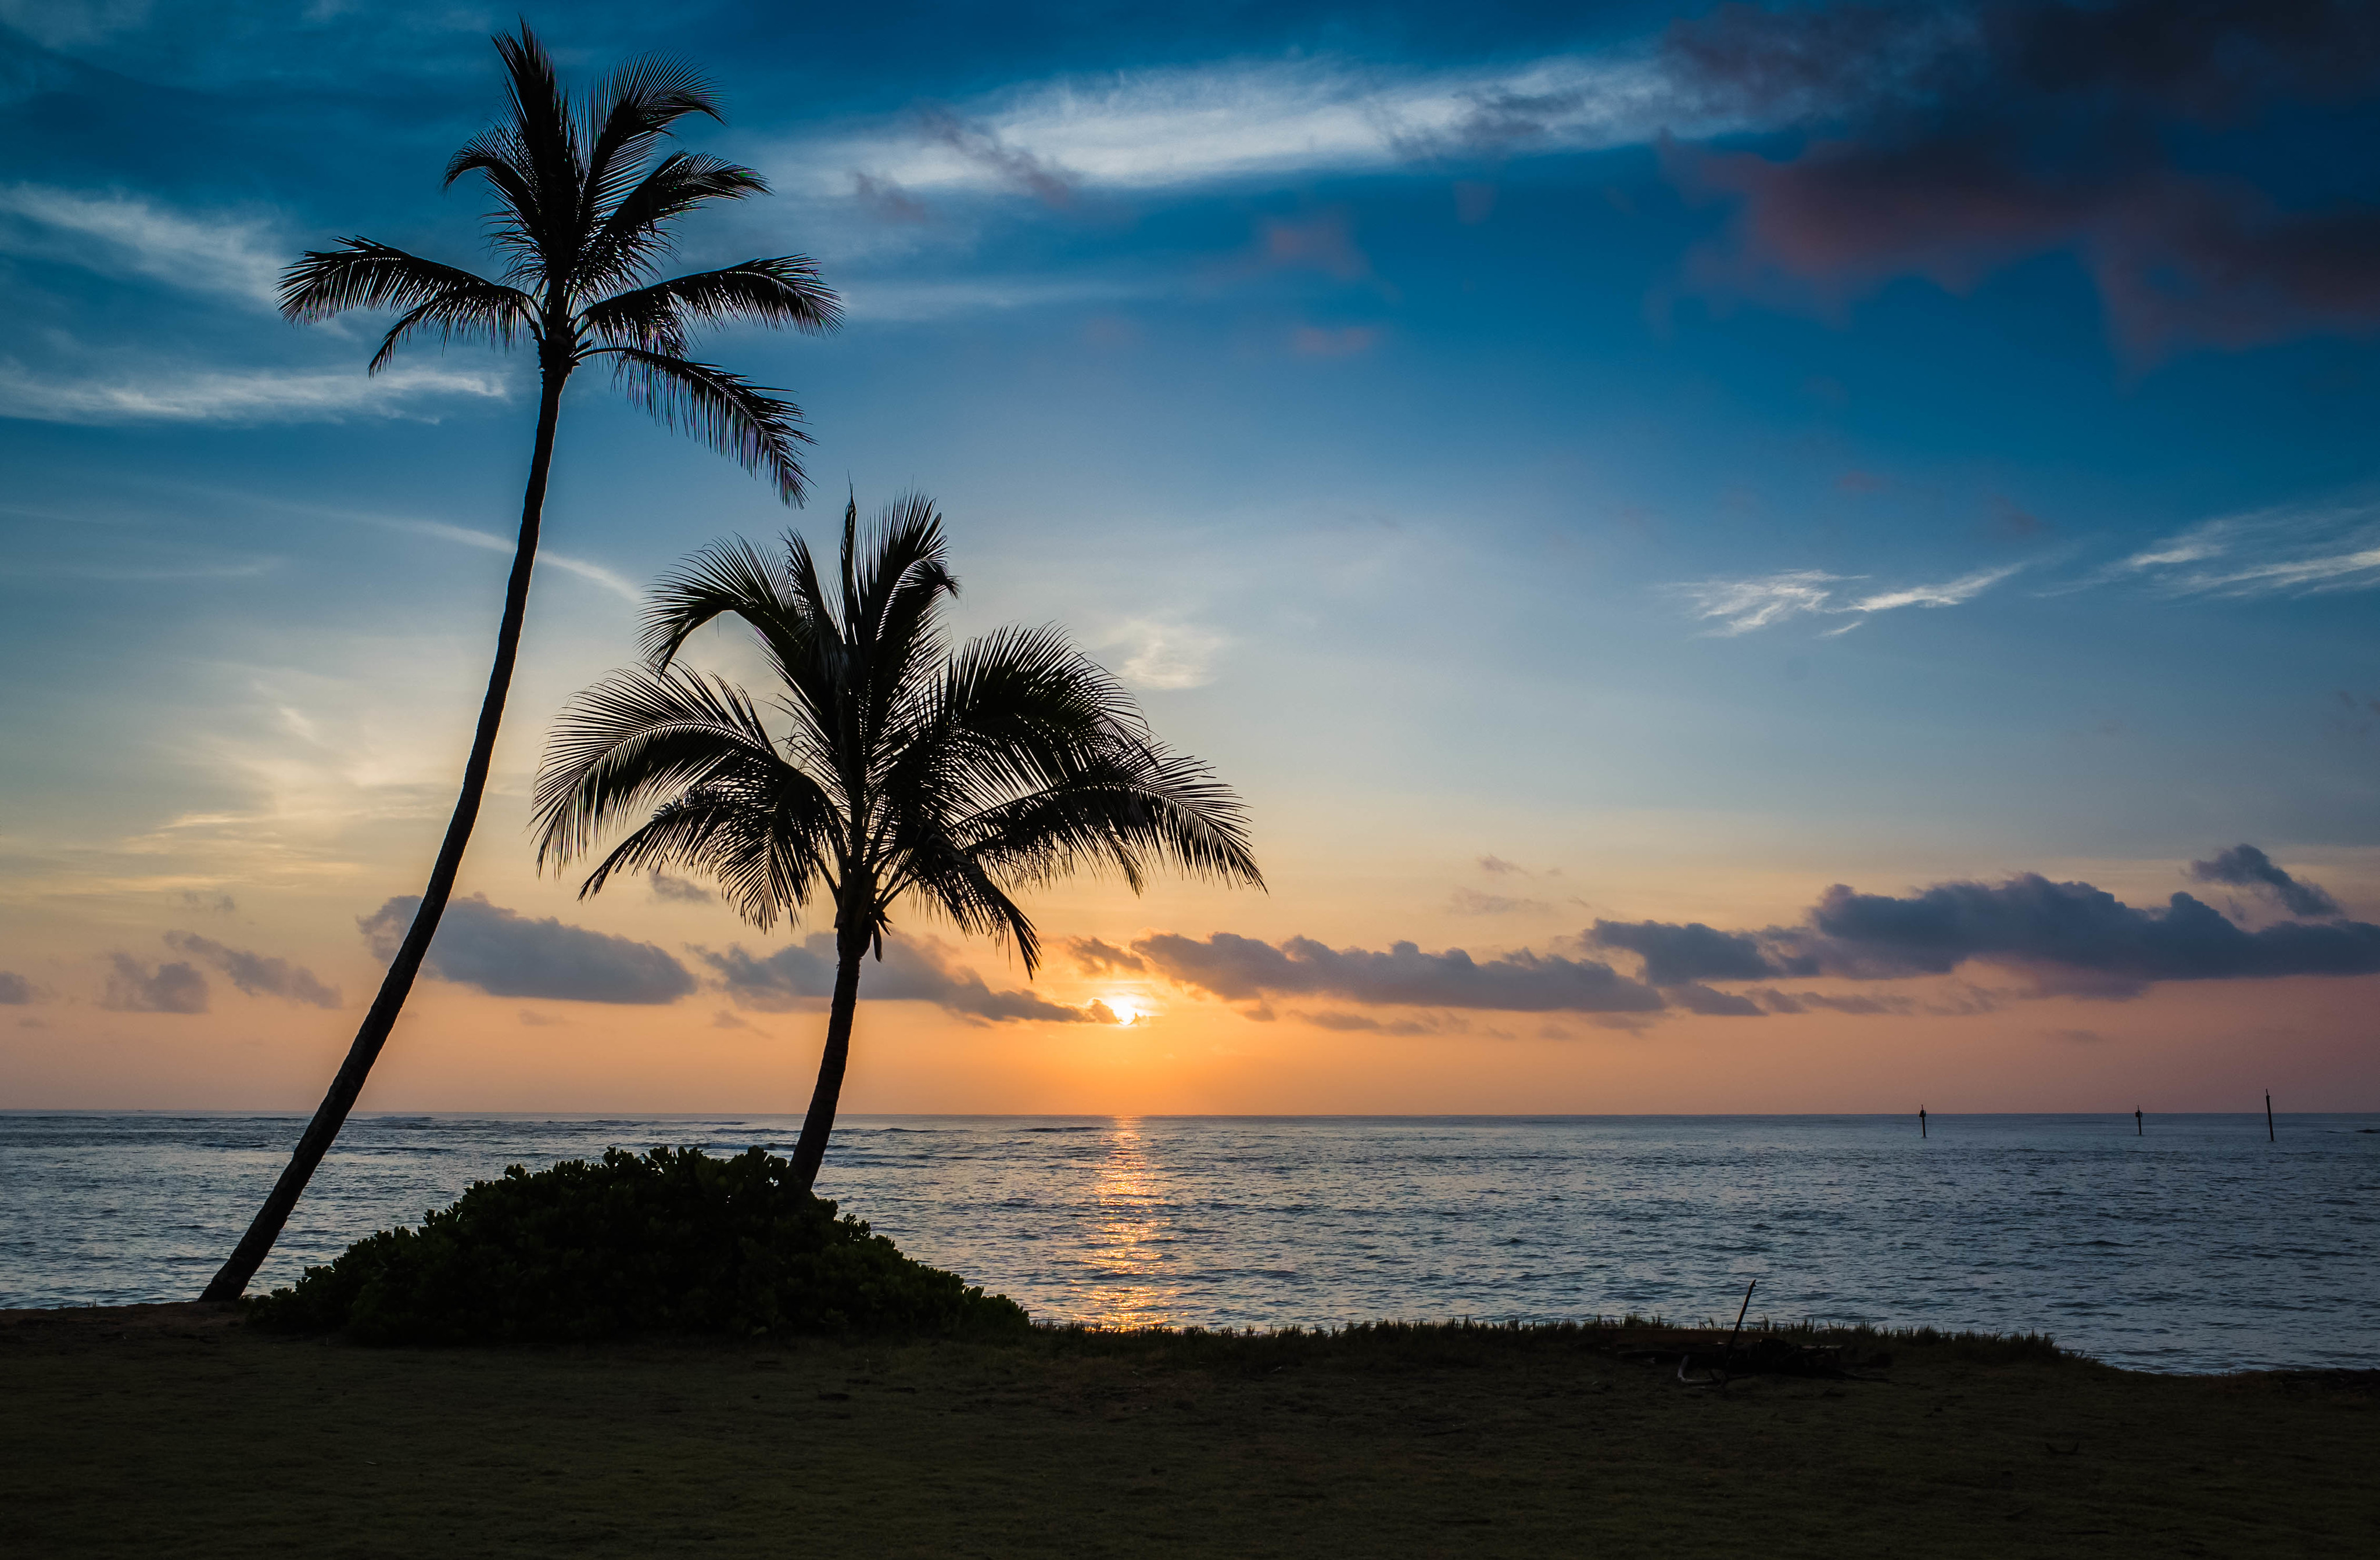 64536 download wallpaper Nature, Beach, Sunset, Sea, Palms screensavers and pictures for free